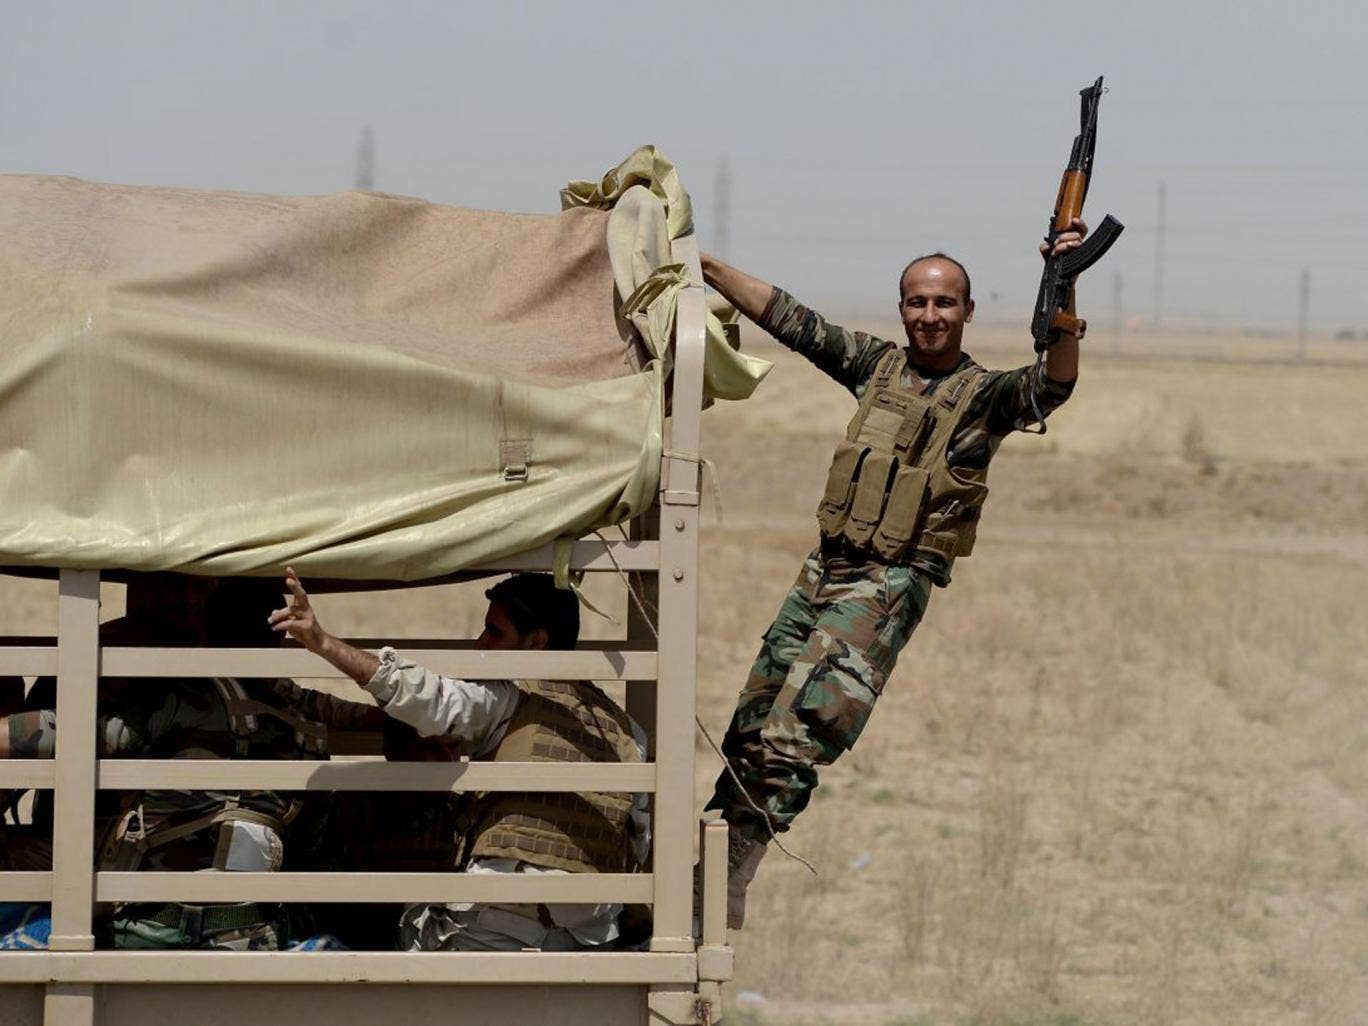 Kurdish Peshmerga forces took control of Kirkuk after it was abandoned by the Iraqi army